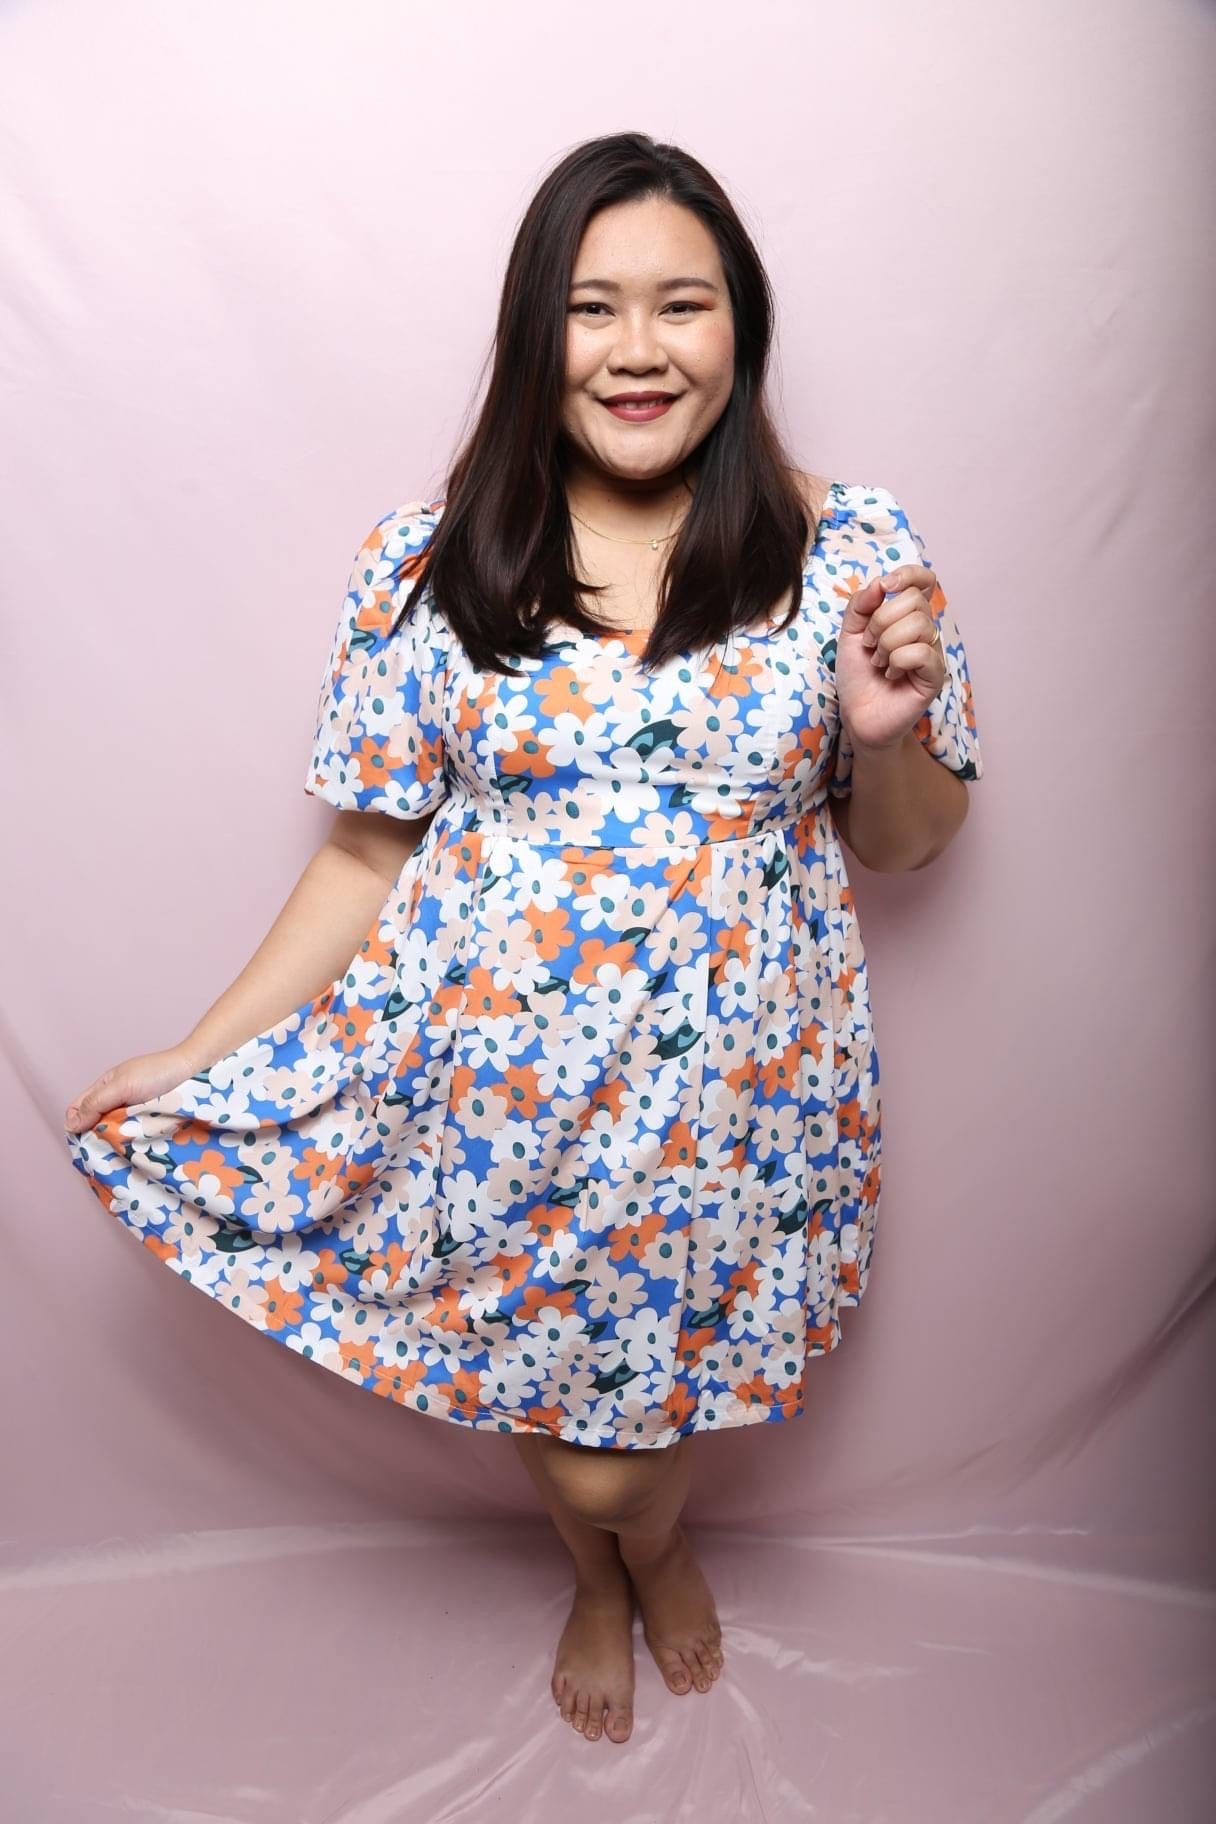 Tracy Daisy Dress (Plus Size Dress)